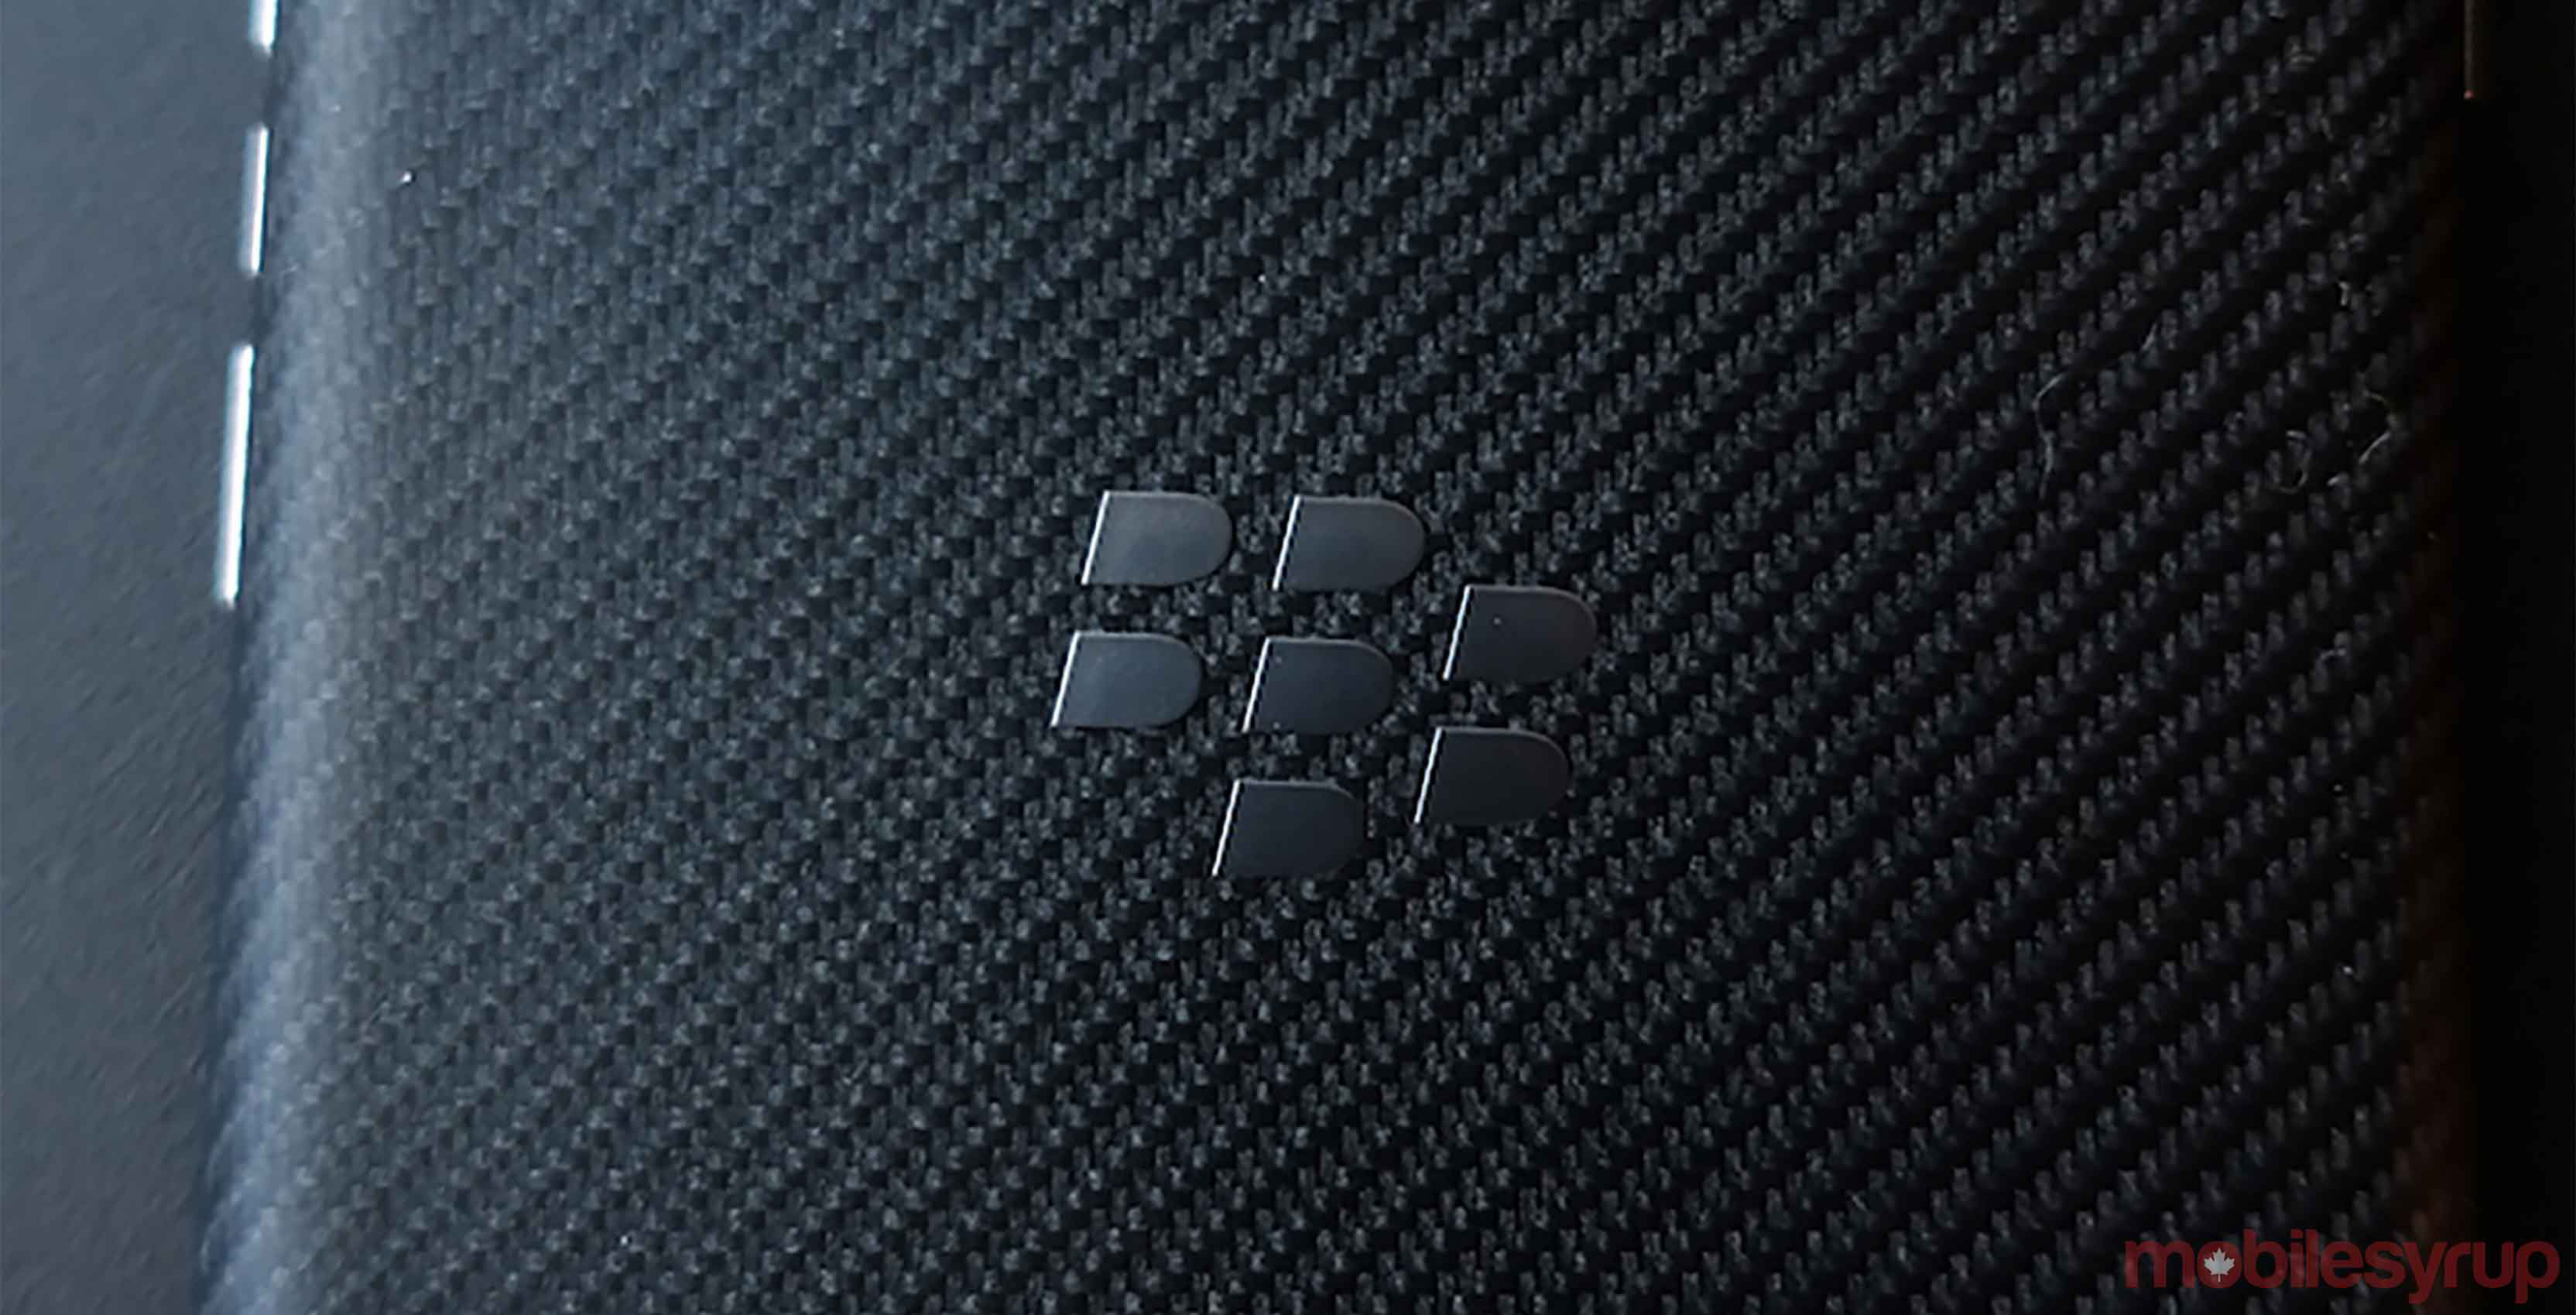 The Next BlackBerry Smartphone Will Be Water-Resistant